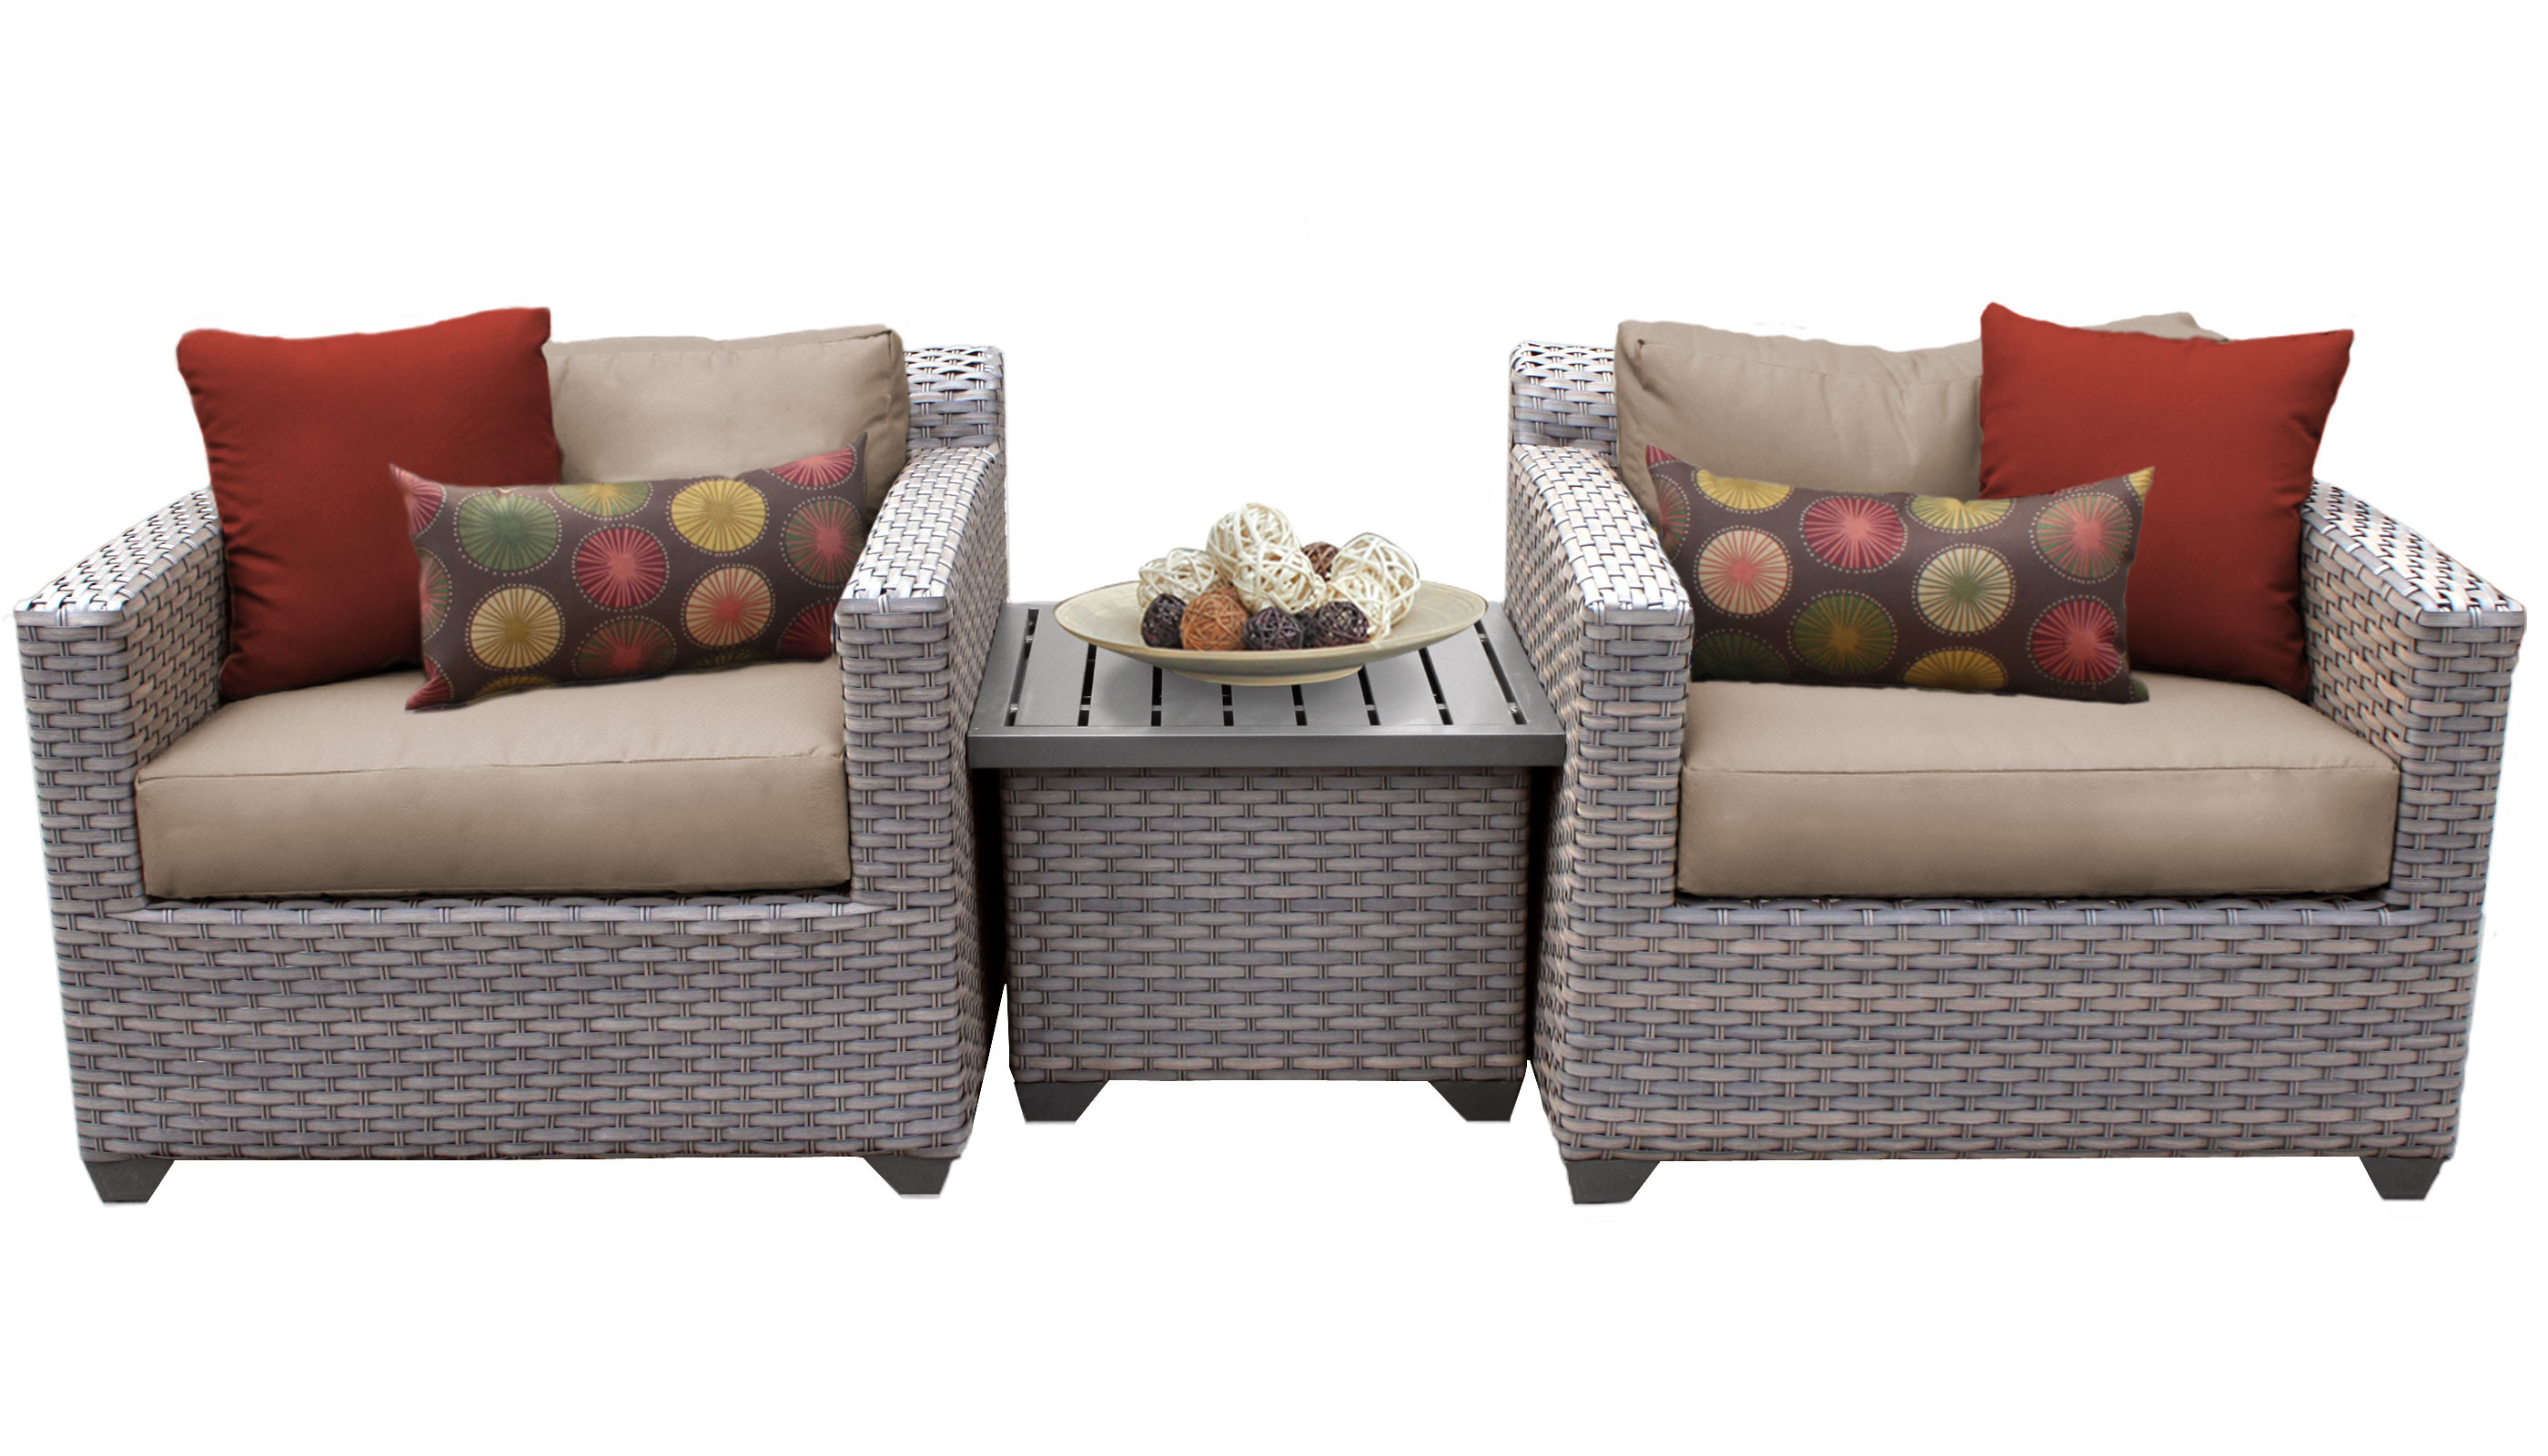 Best ideas about 3 Piece Patio Set . Save or Pin Catalina 3 Piece Outdoor Wicker Patio Furniture Set 03a 2 Now.